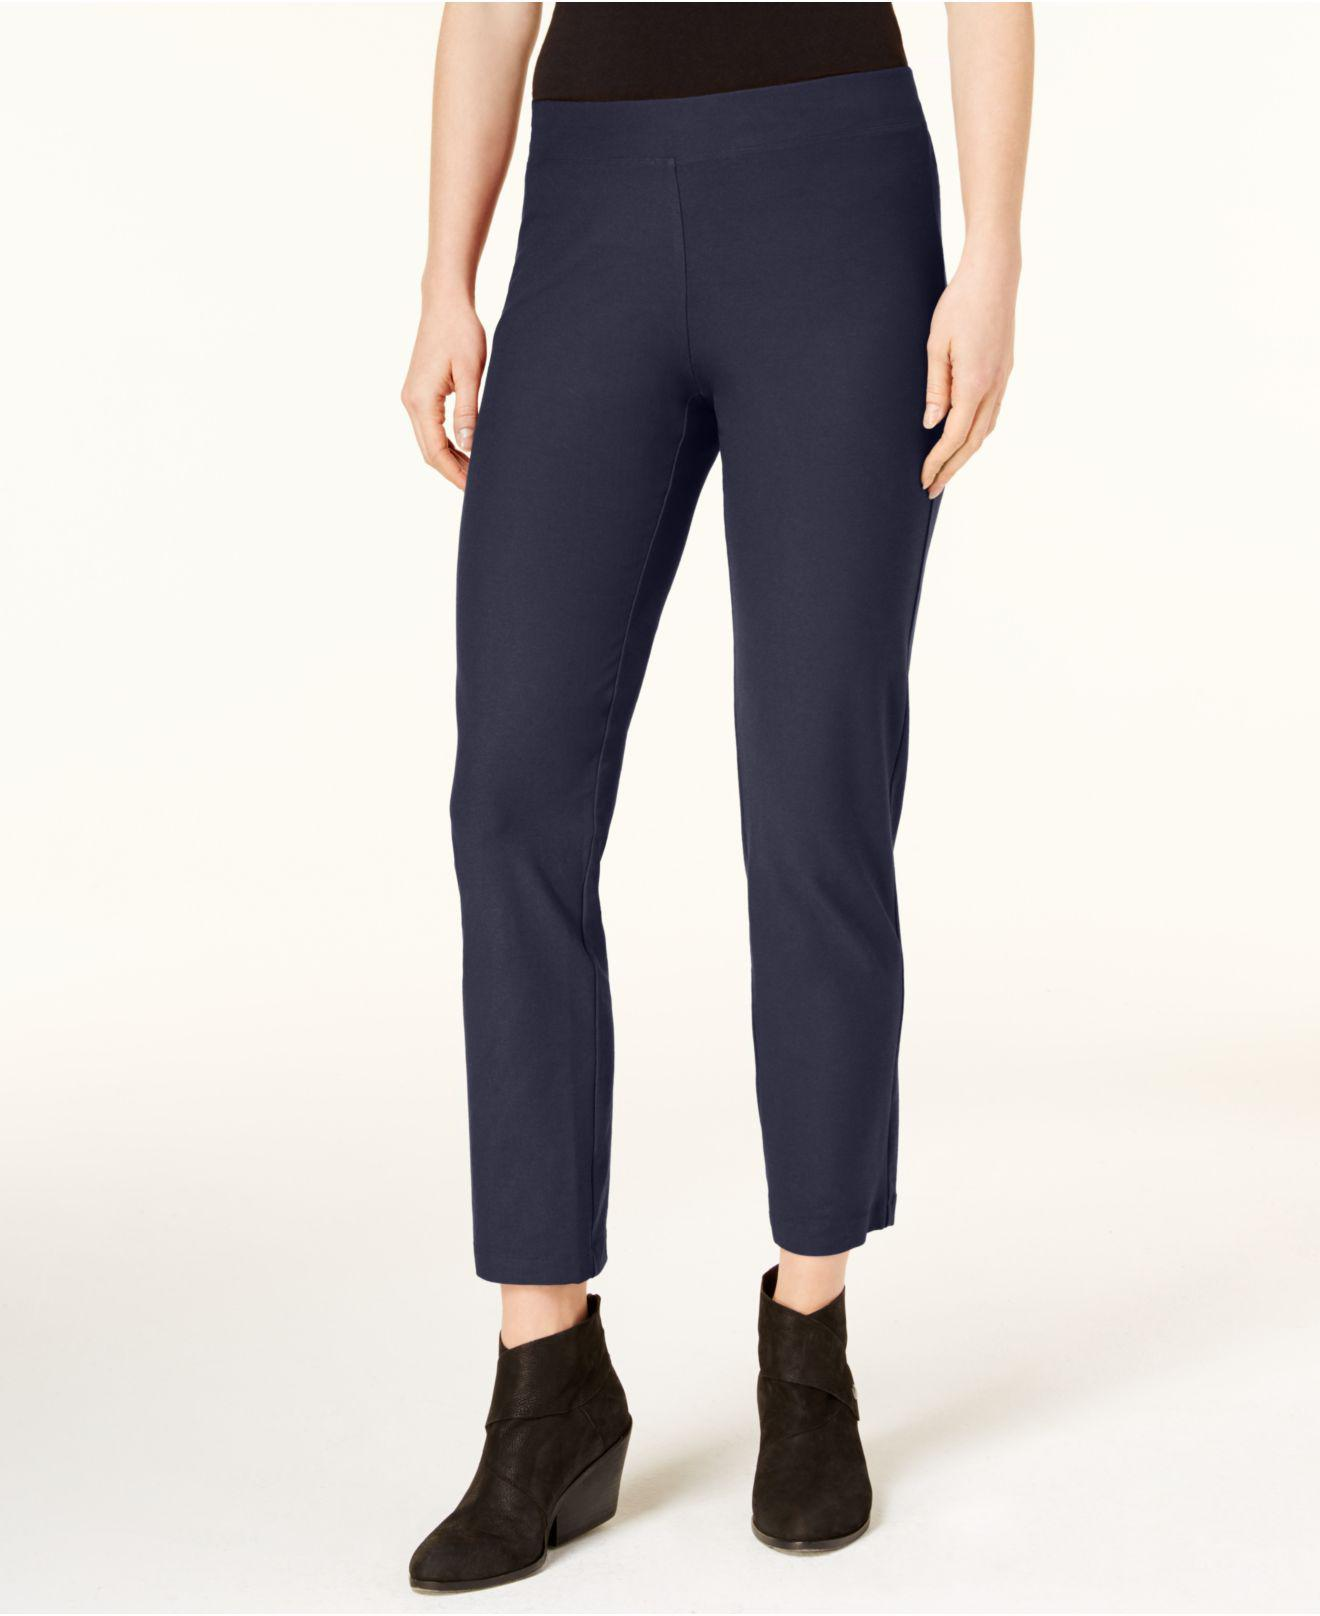 8e97c51d720 Lyst - Eileen Fisher Slim-pull-on Ankle Pants in Blue - Save 31%